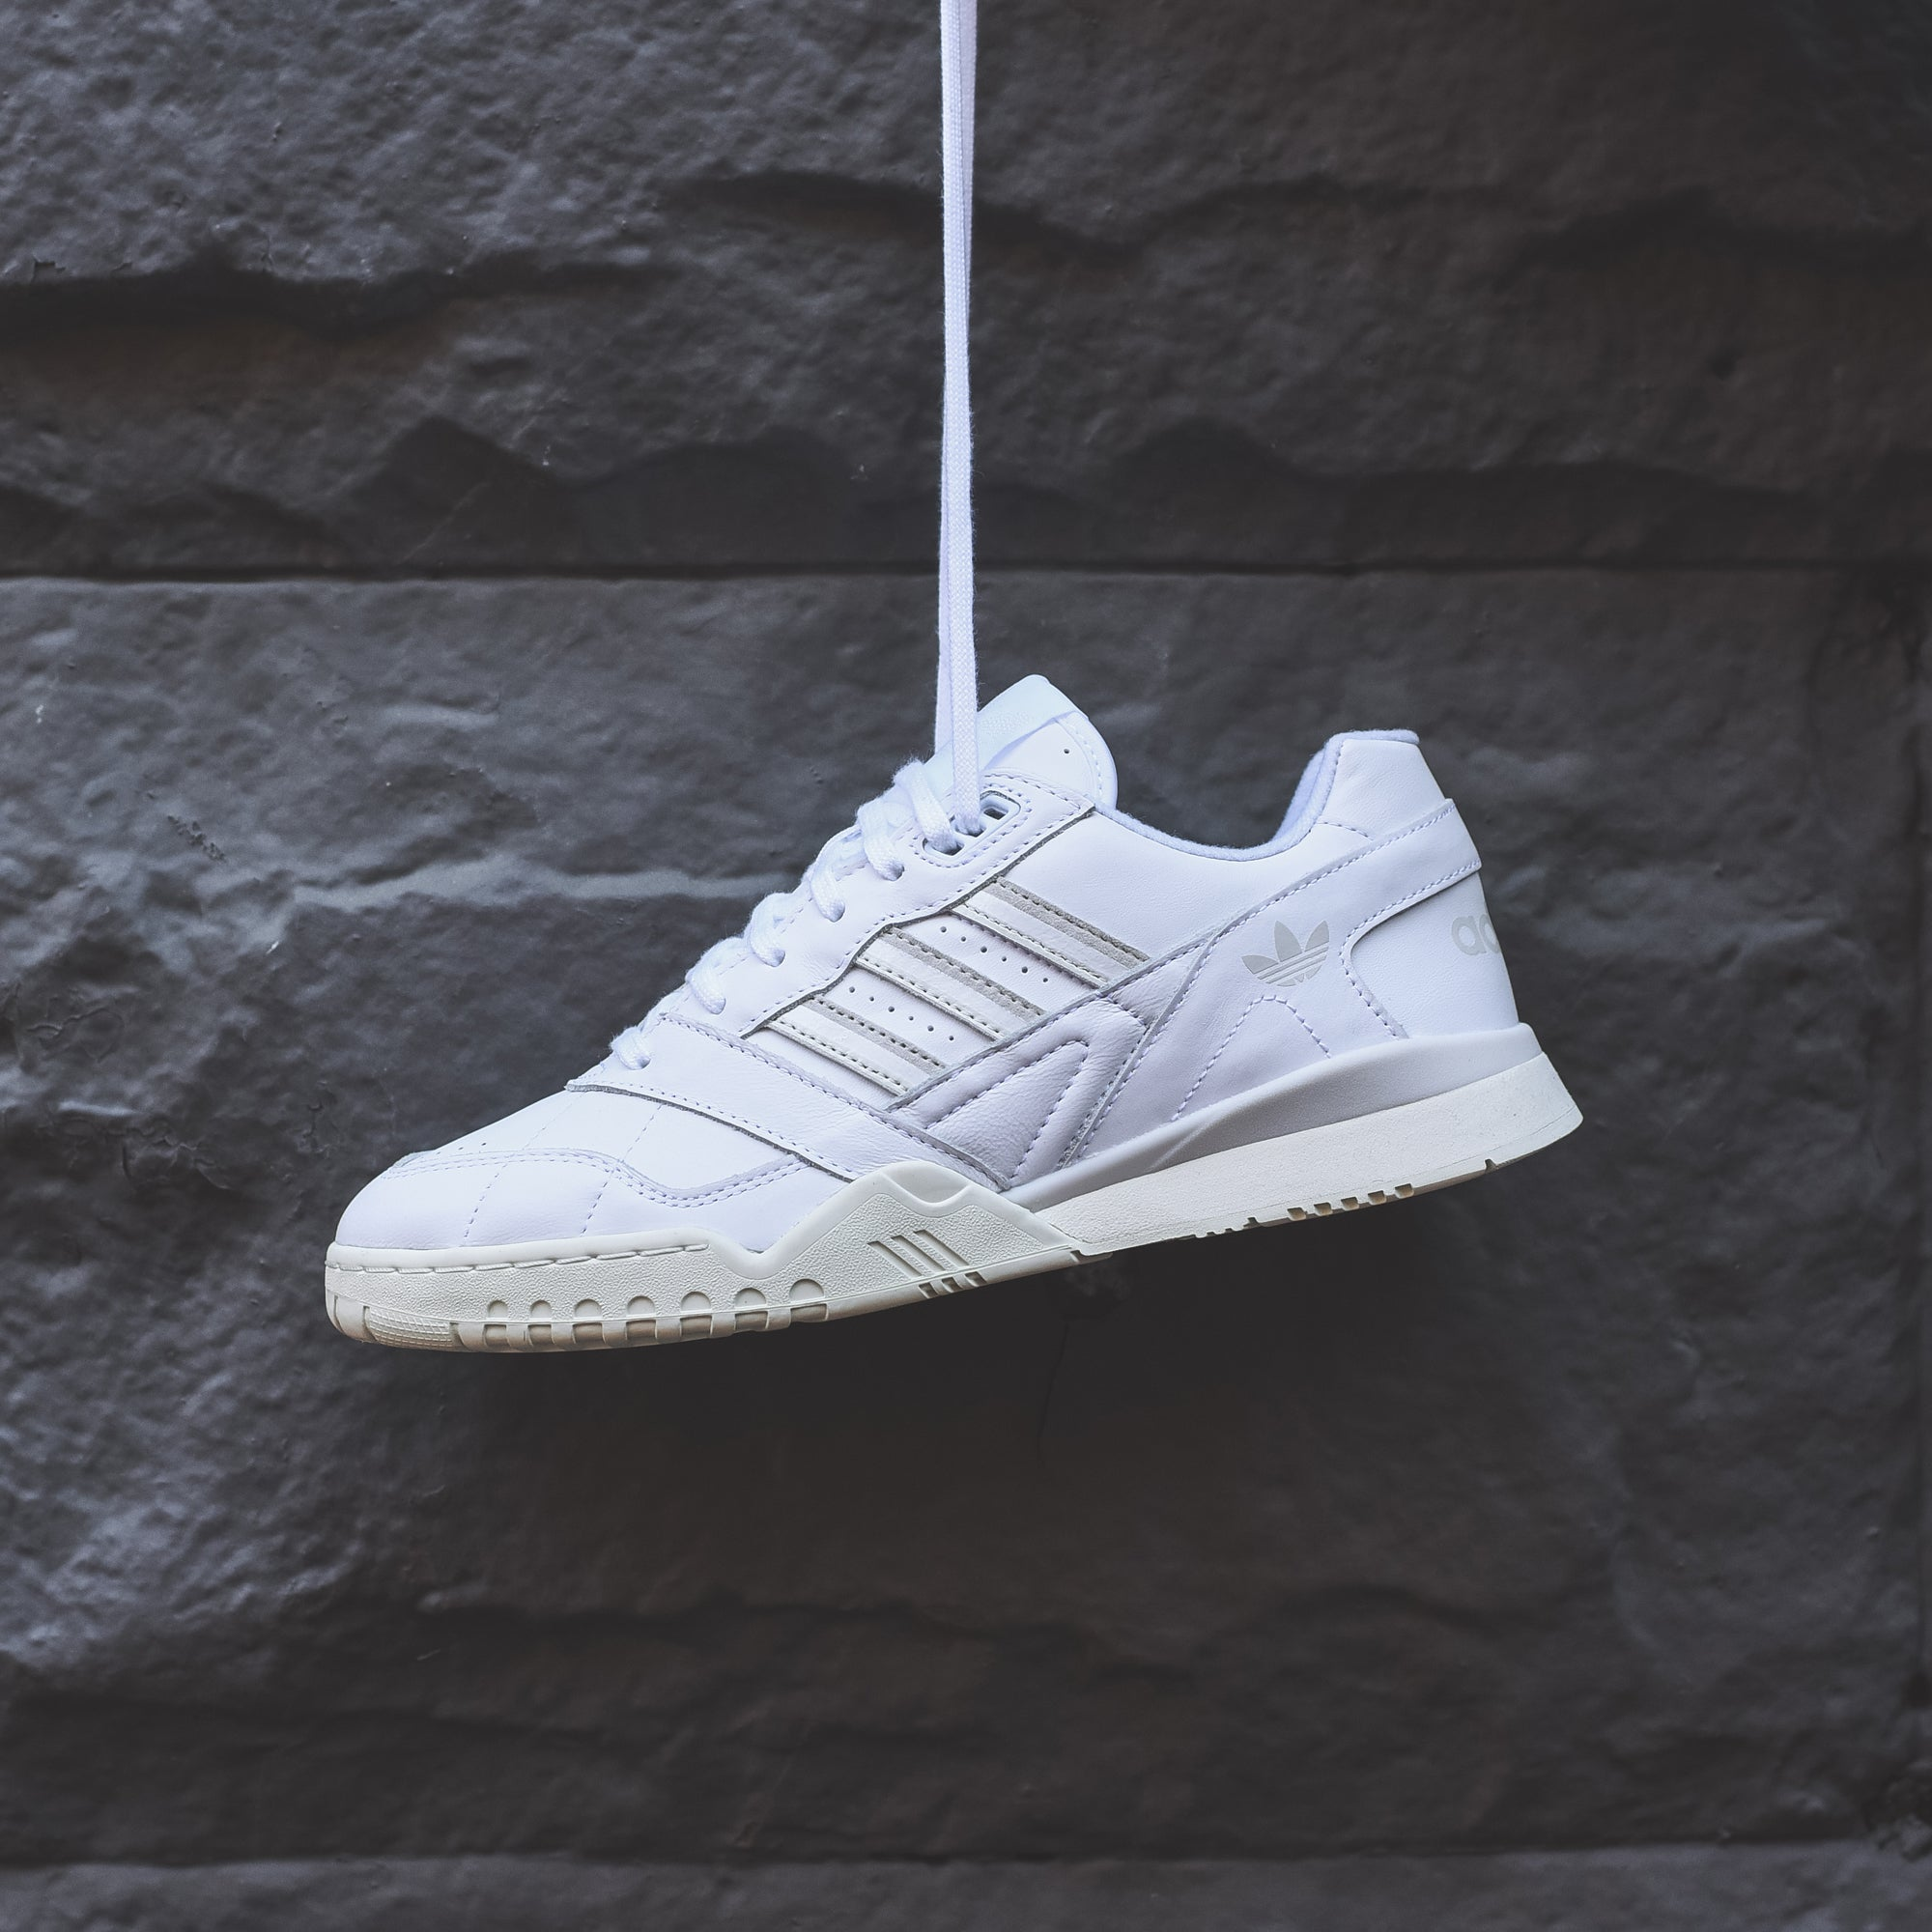 adidas Originals AR Trainer White Raw White Off White